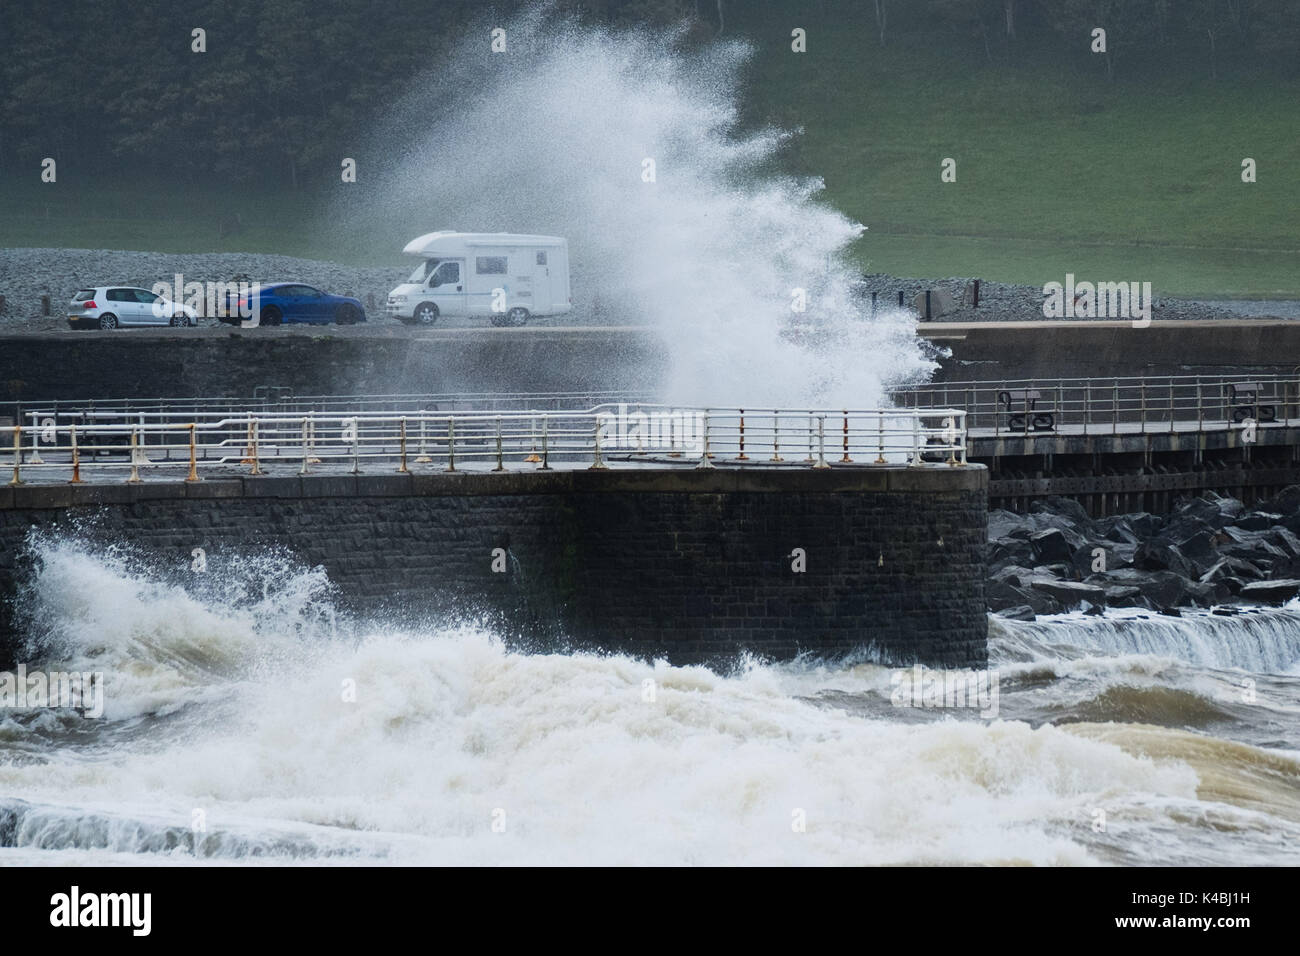 Aberystwyth Wales UK, Wednesday 06 September 2017 UK Weather: As the weather again turns unsettled and breezy, strong - Stock Image